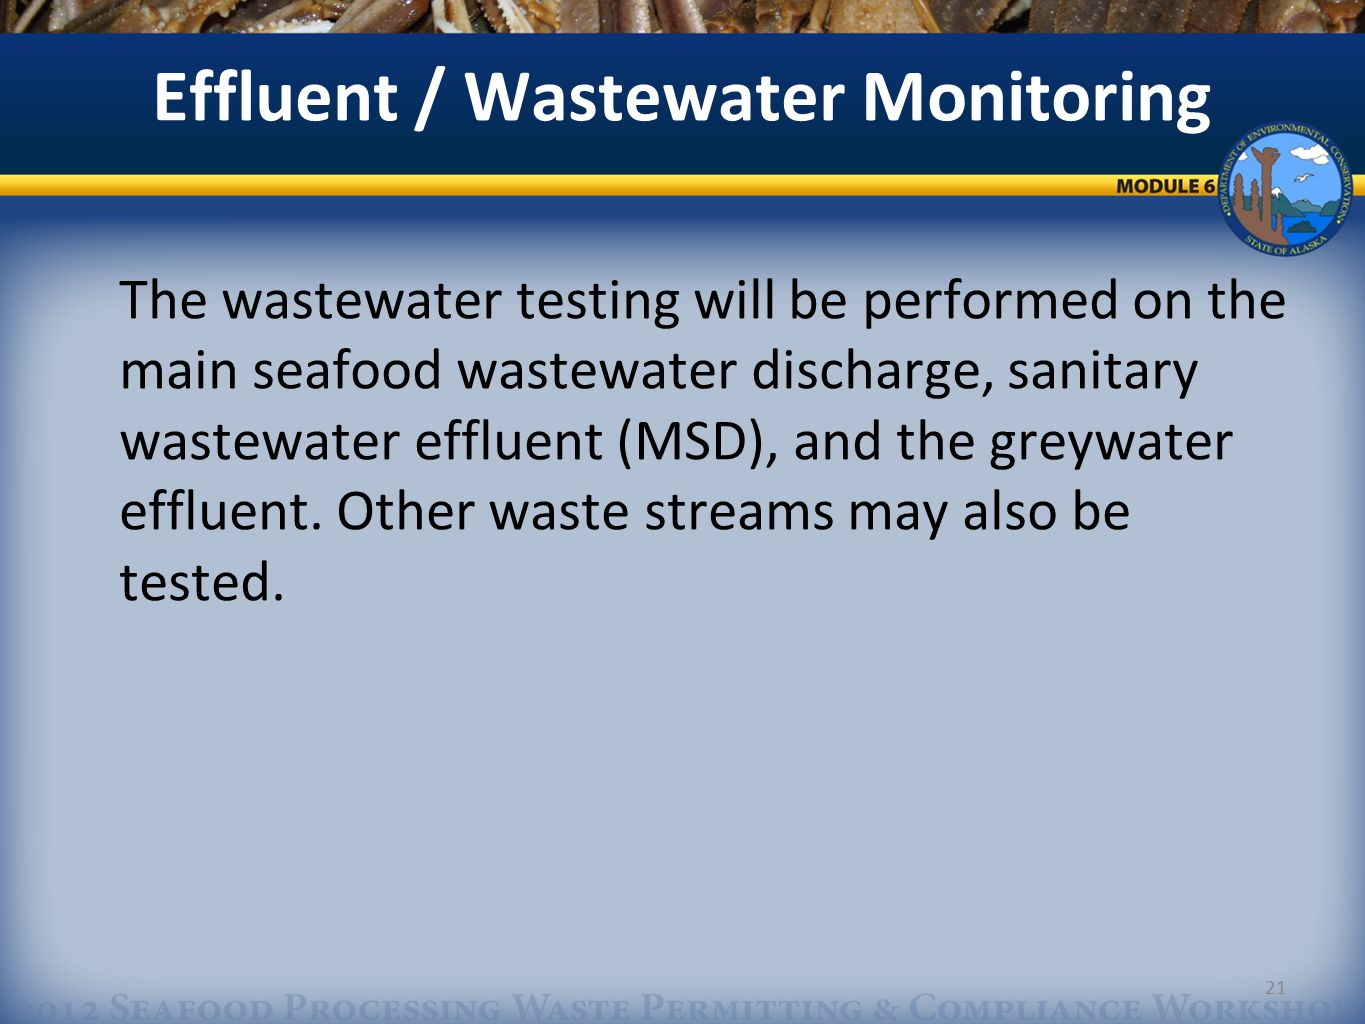 21 Effluent / Wastewater Monitoring The wastewater testing will be performed on the main seafood wastewater discharge, sanitary wastewater effluent (MSD), and the greywater effluent.